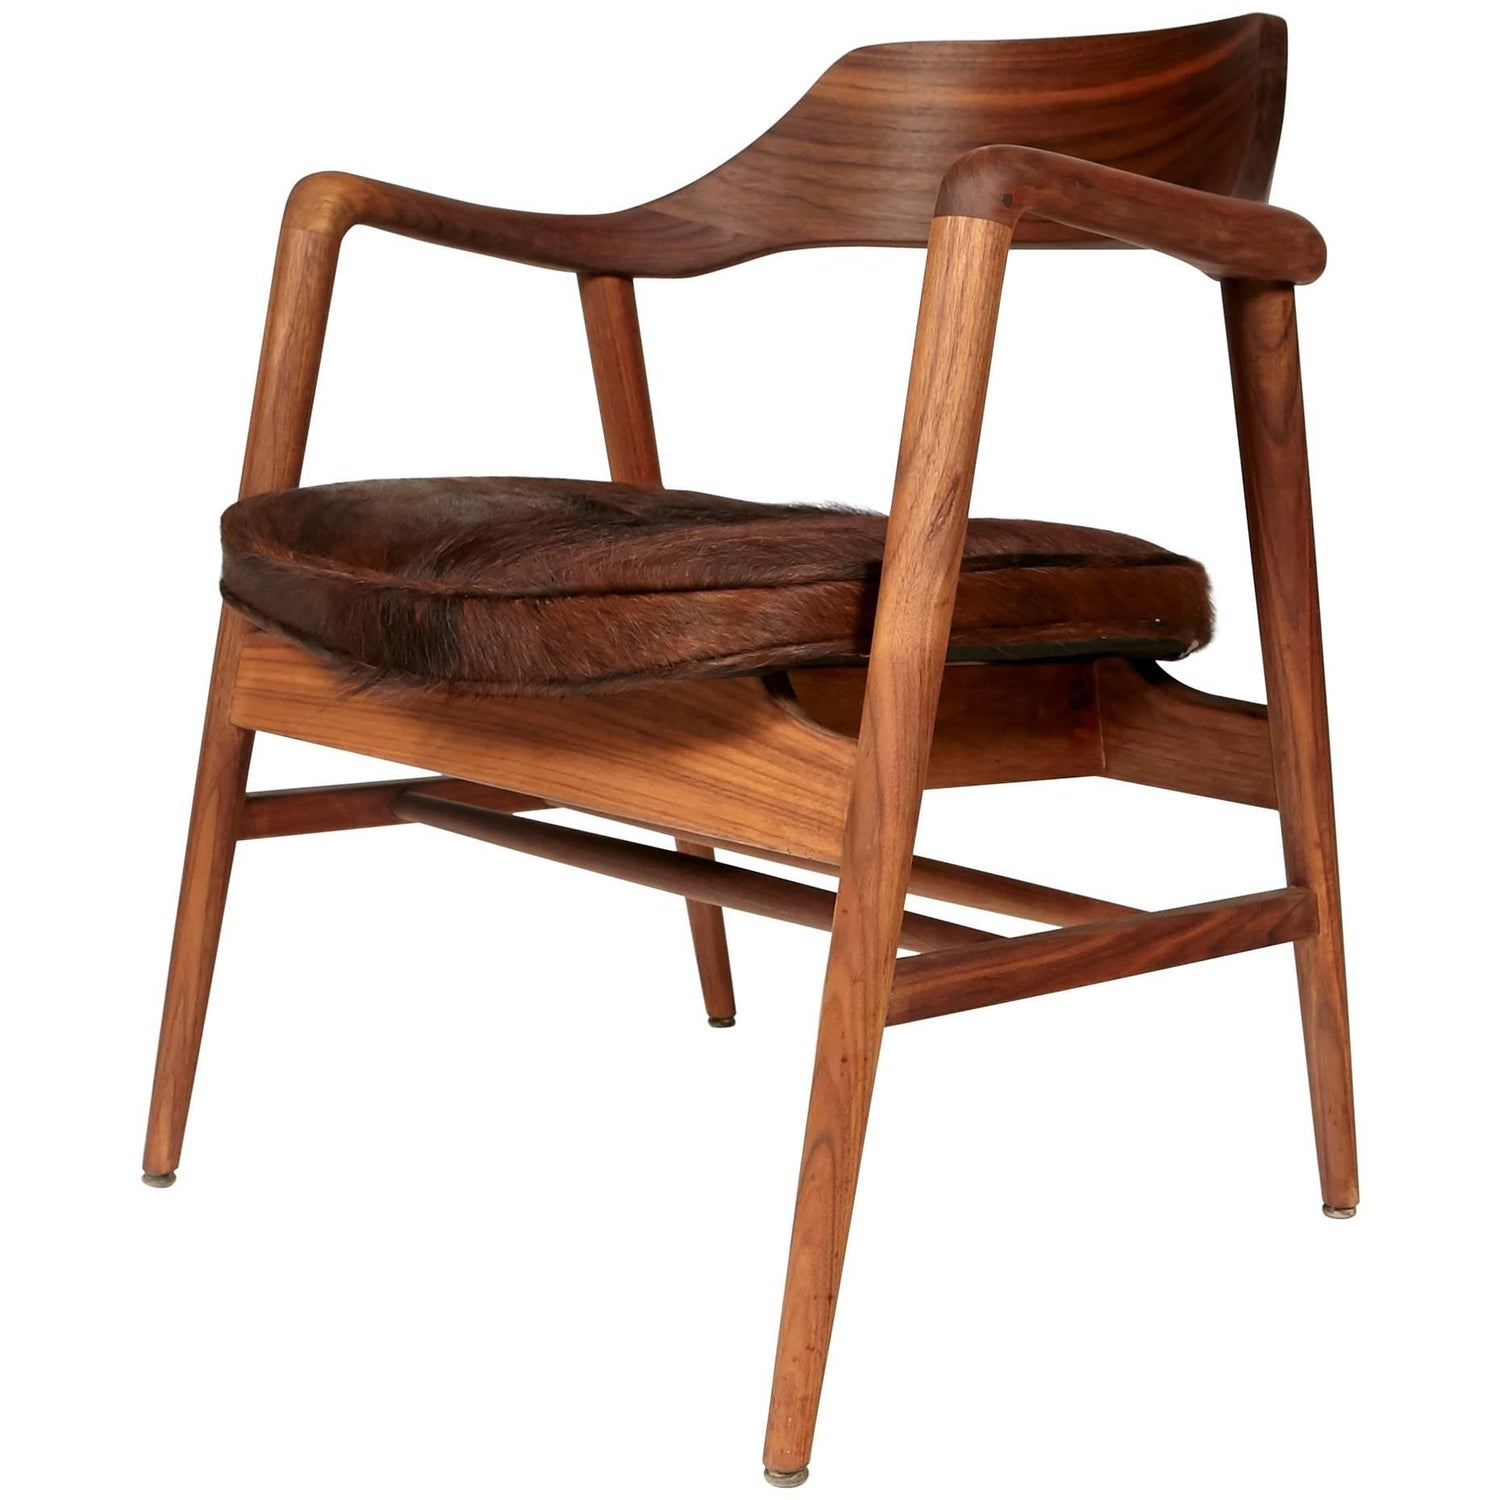 Pair Mid Century Modern American Walnut Side Chairs For Sale at